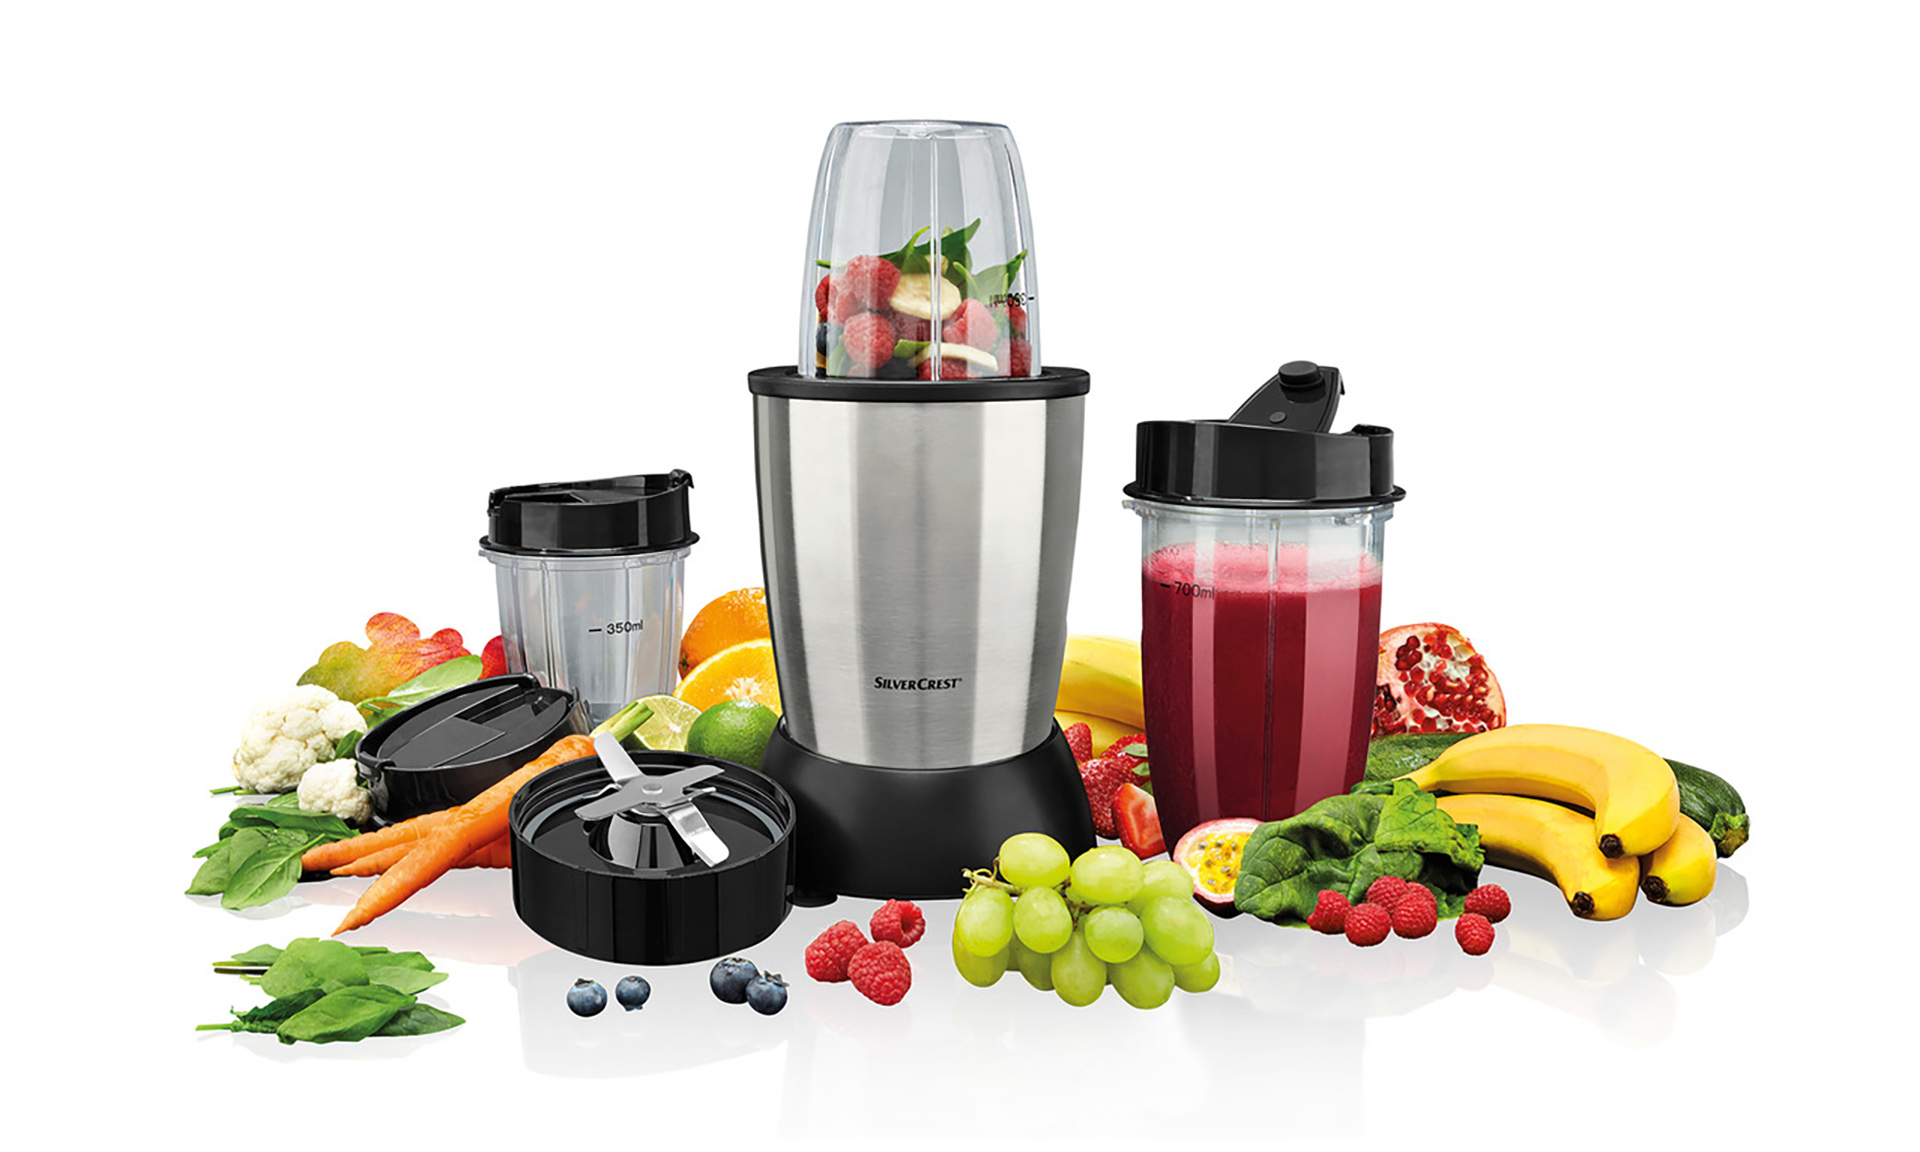 Lidl Silvercrest Nutrition Mixer Test Is The 30 Lidl Blender Any Good Which News